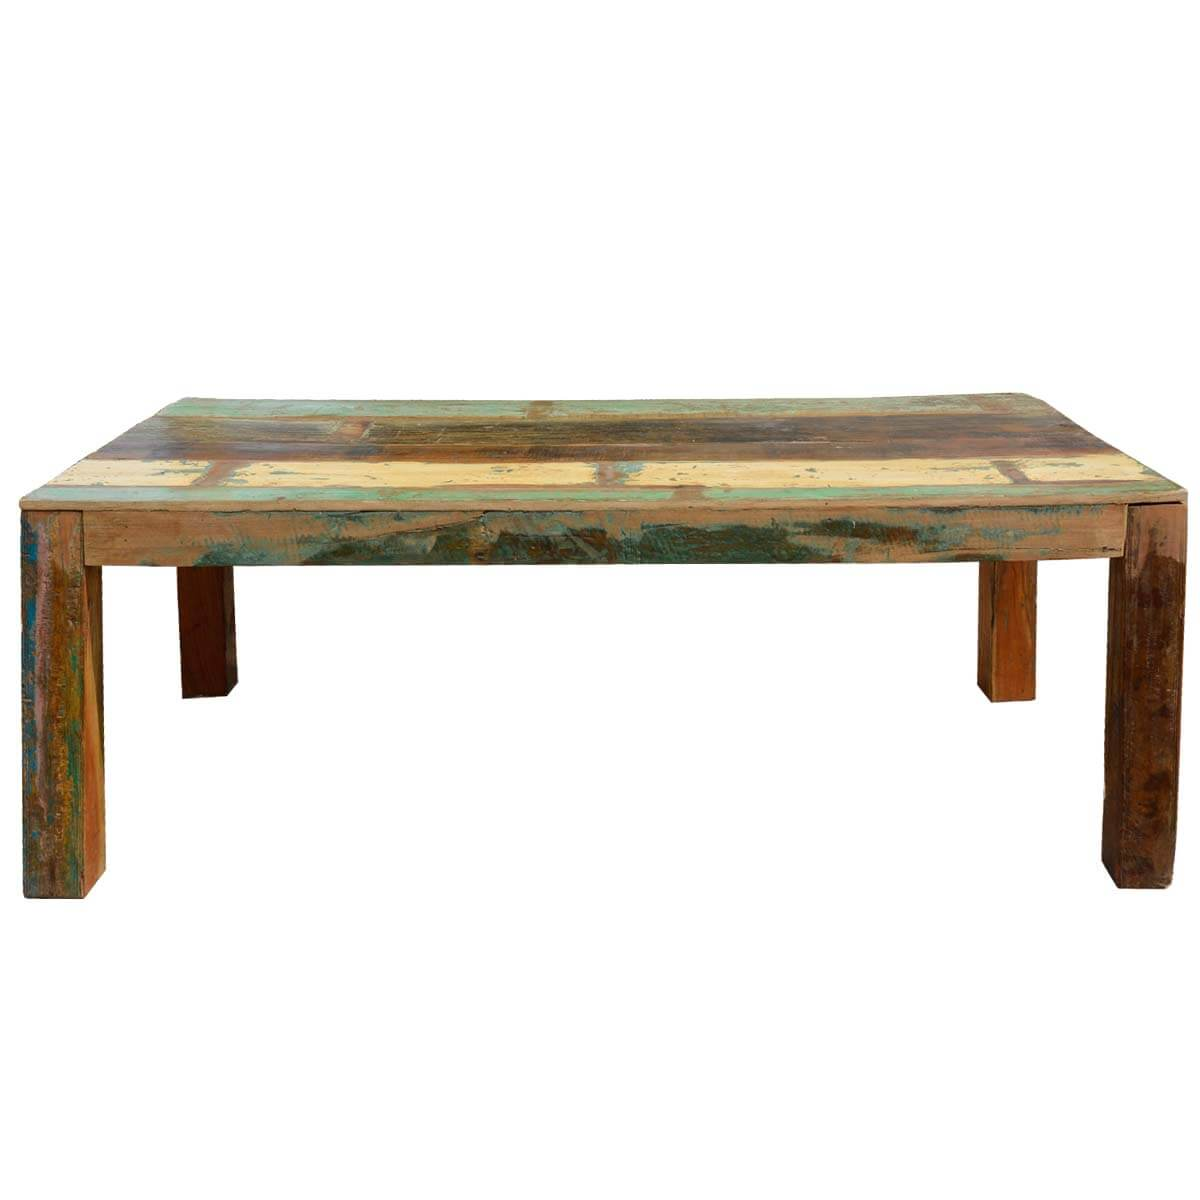 Appalachian rustic large reclaimed wood dining table Rustic wood dining table